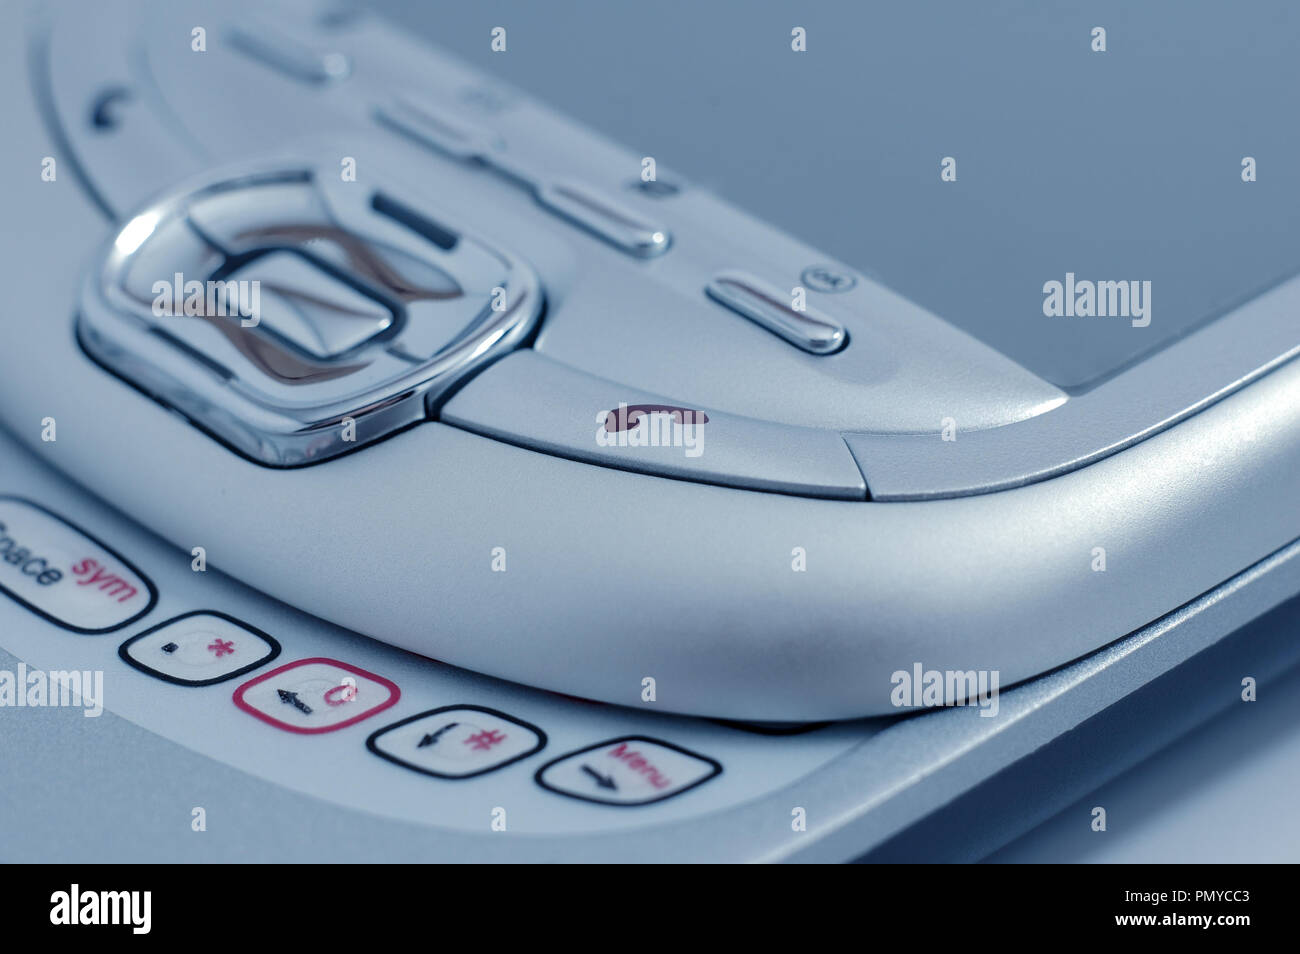 PDA. Old type mobile phone. Picture in blue tint. - Stock Image